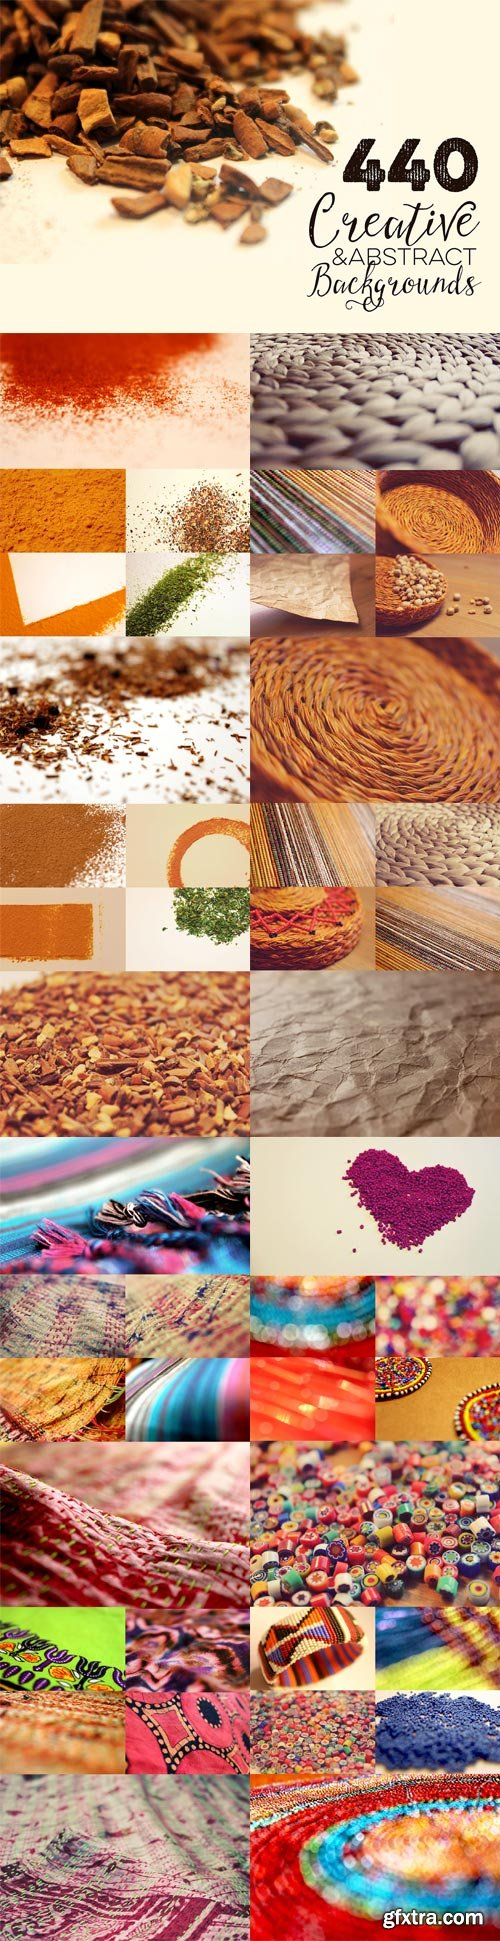 Creative Abstract Backgrounds